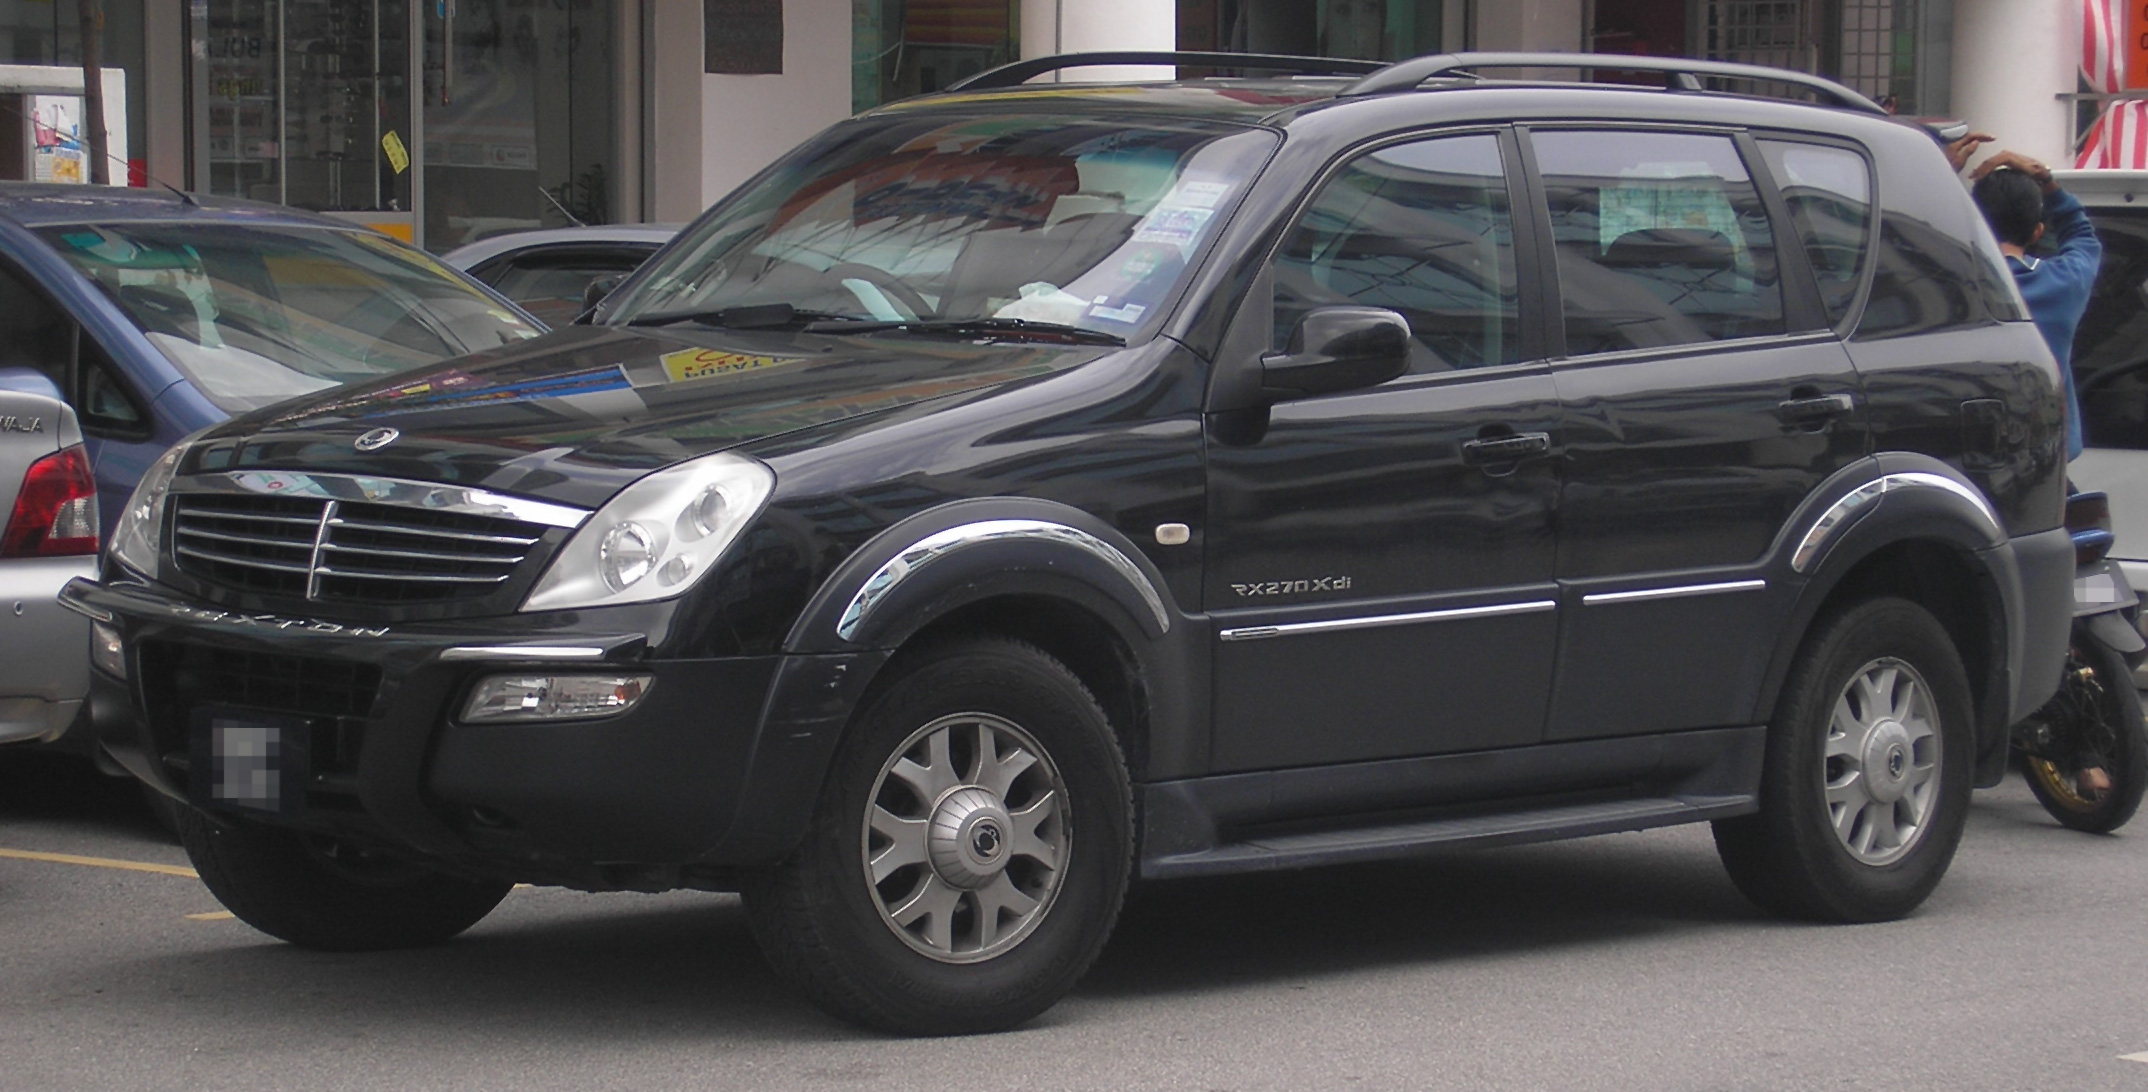 ssangyong kyron ii 2009 pictures #10